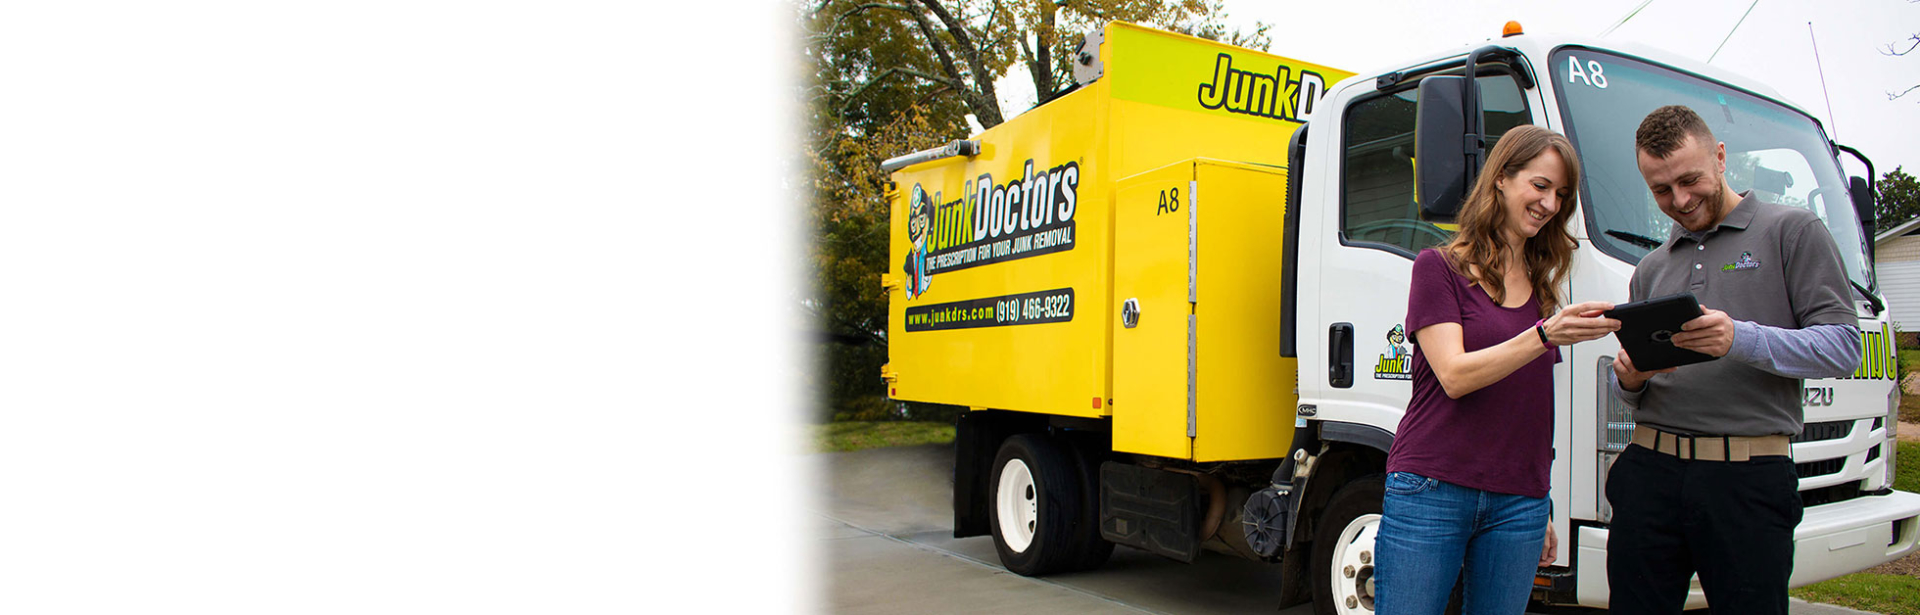 North Carolinas Best Rated Junk Removal Co.